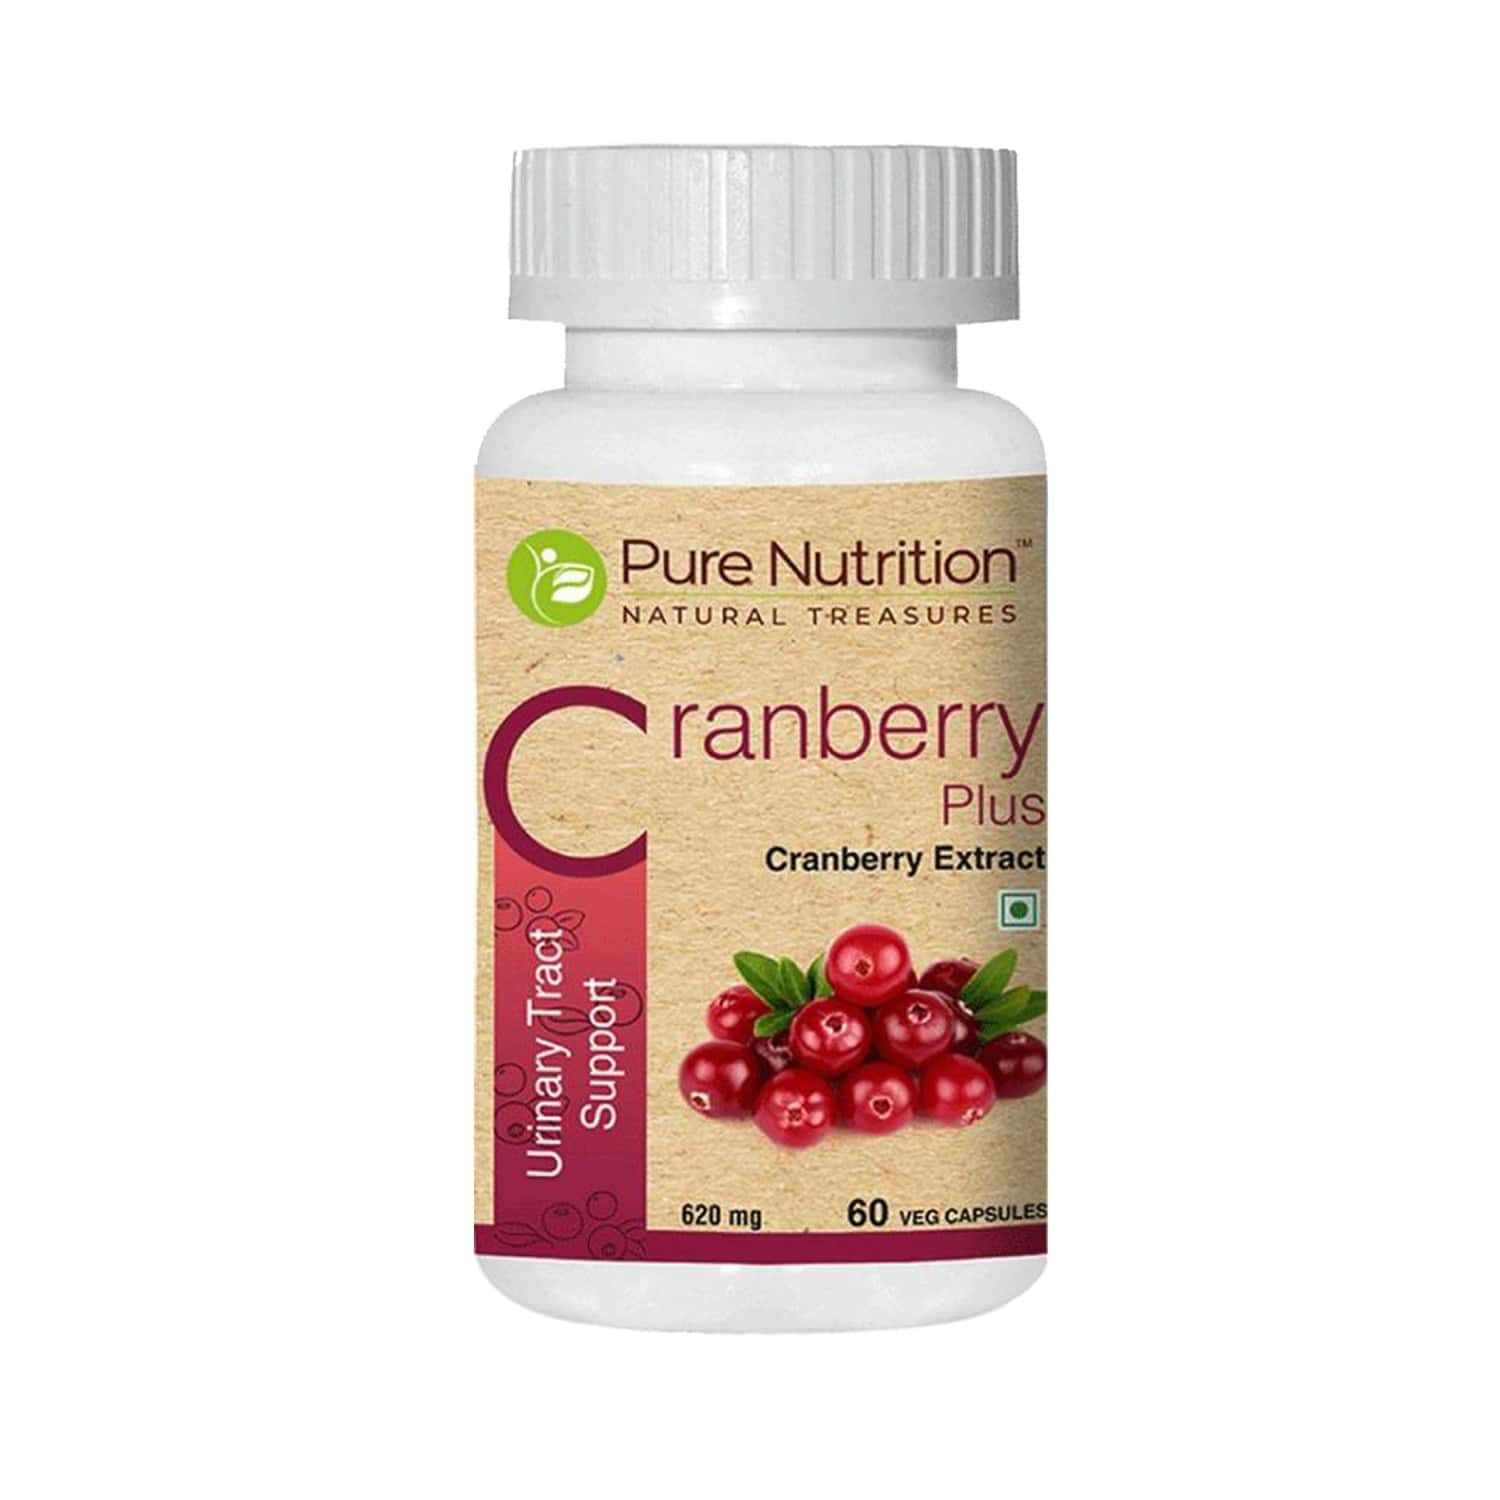 Pure Nutrition Cranberry Plus Urinary Tract Support Capsules Bottle Of 60